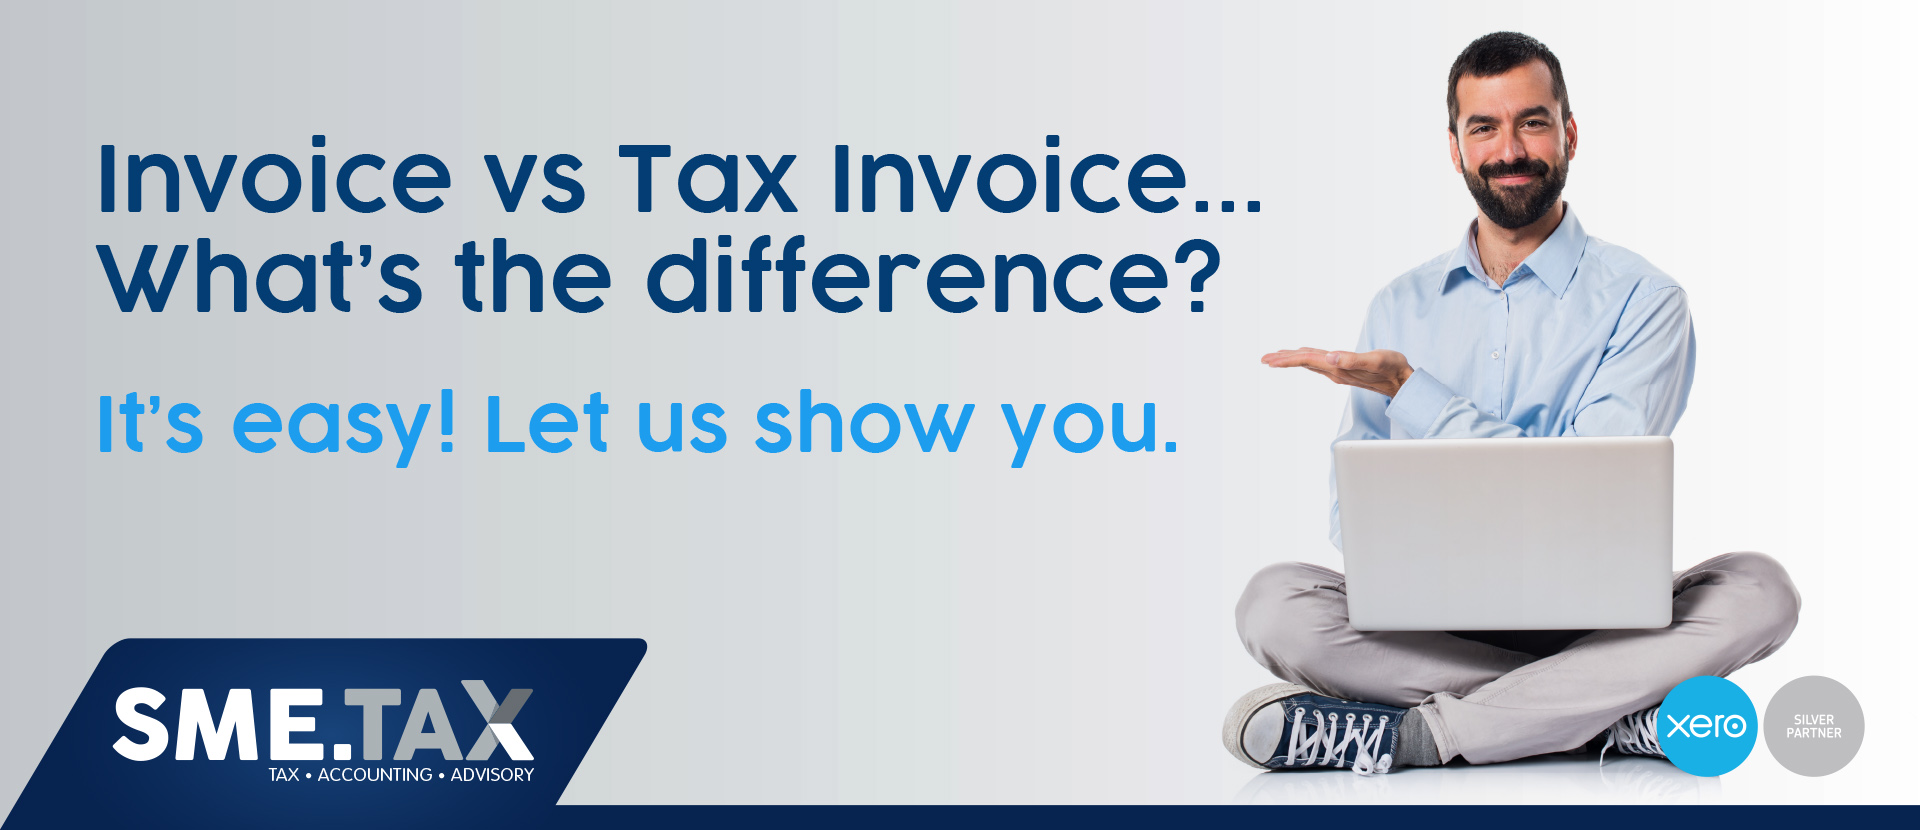 Invoice vs Tax Invoice... What's the difference? 1